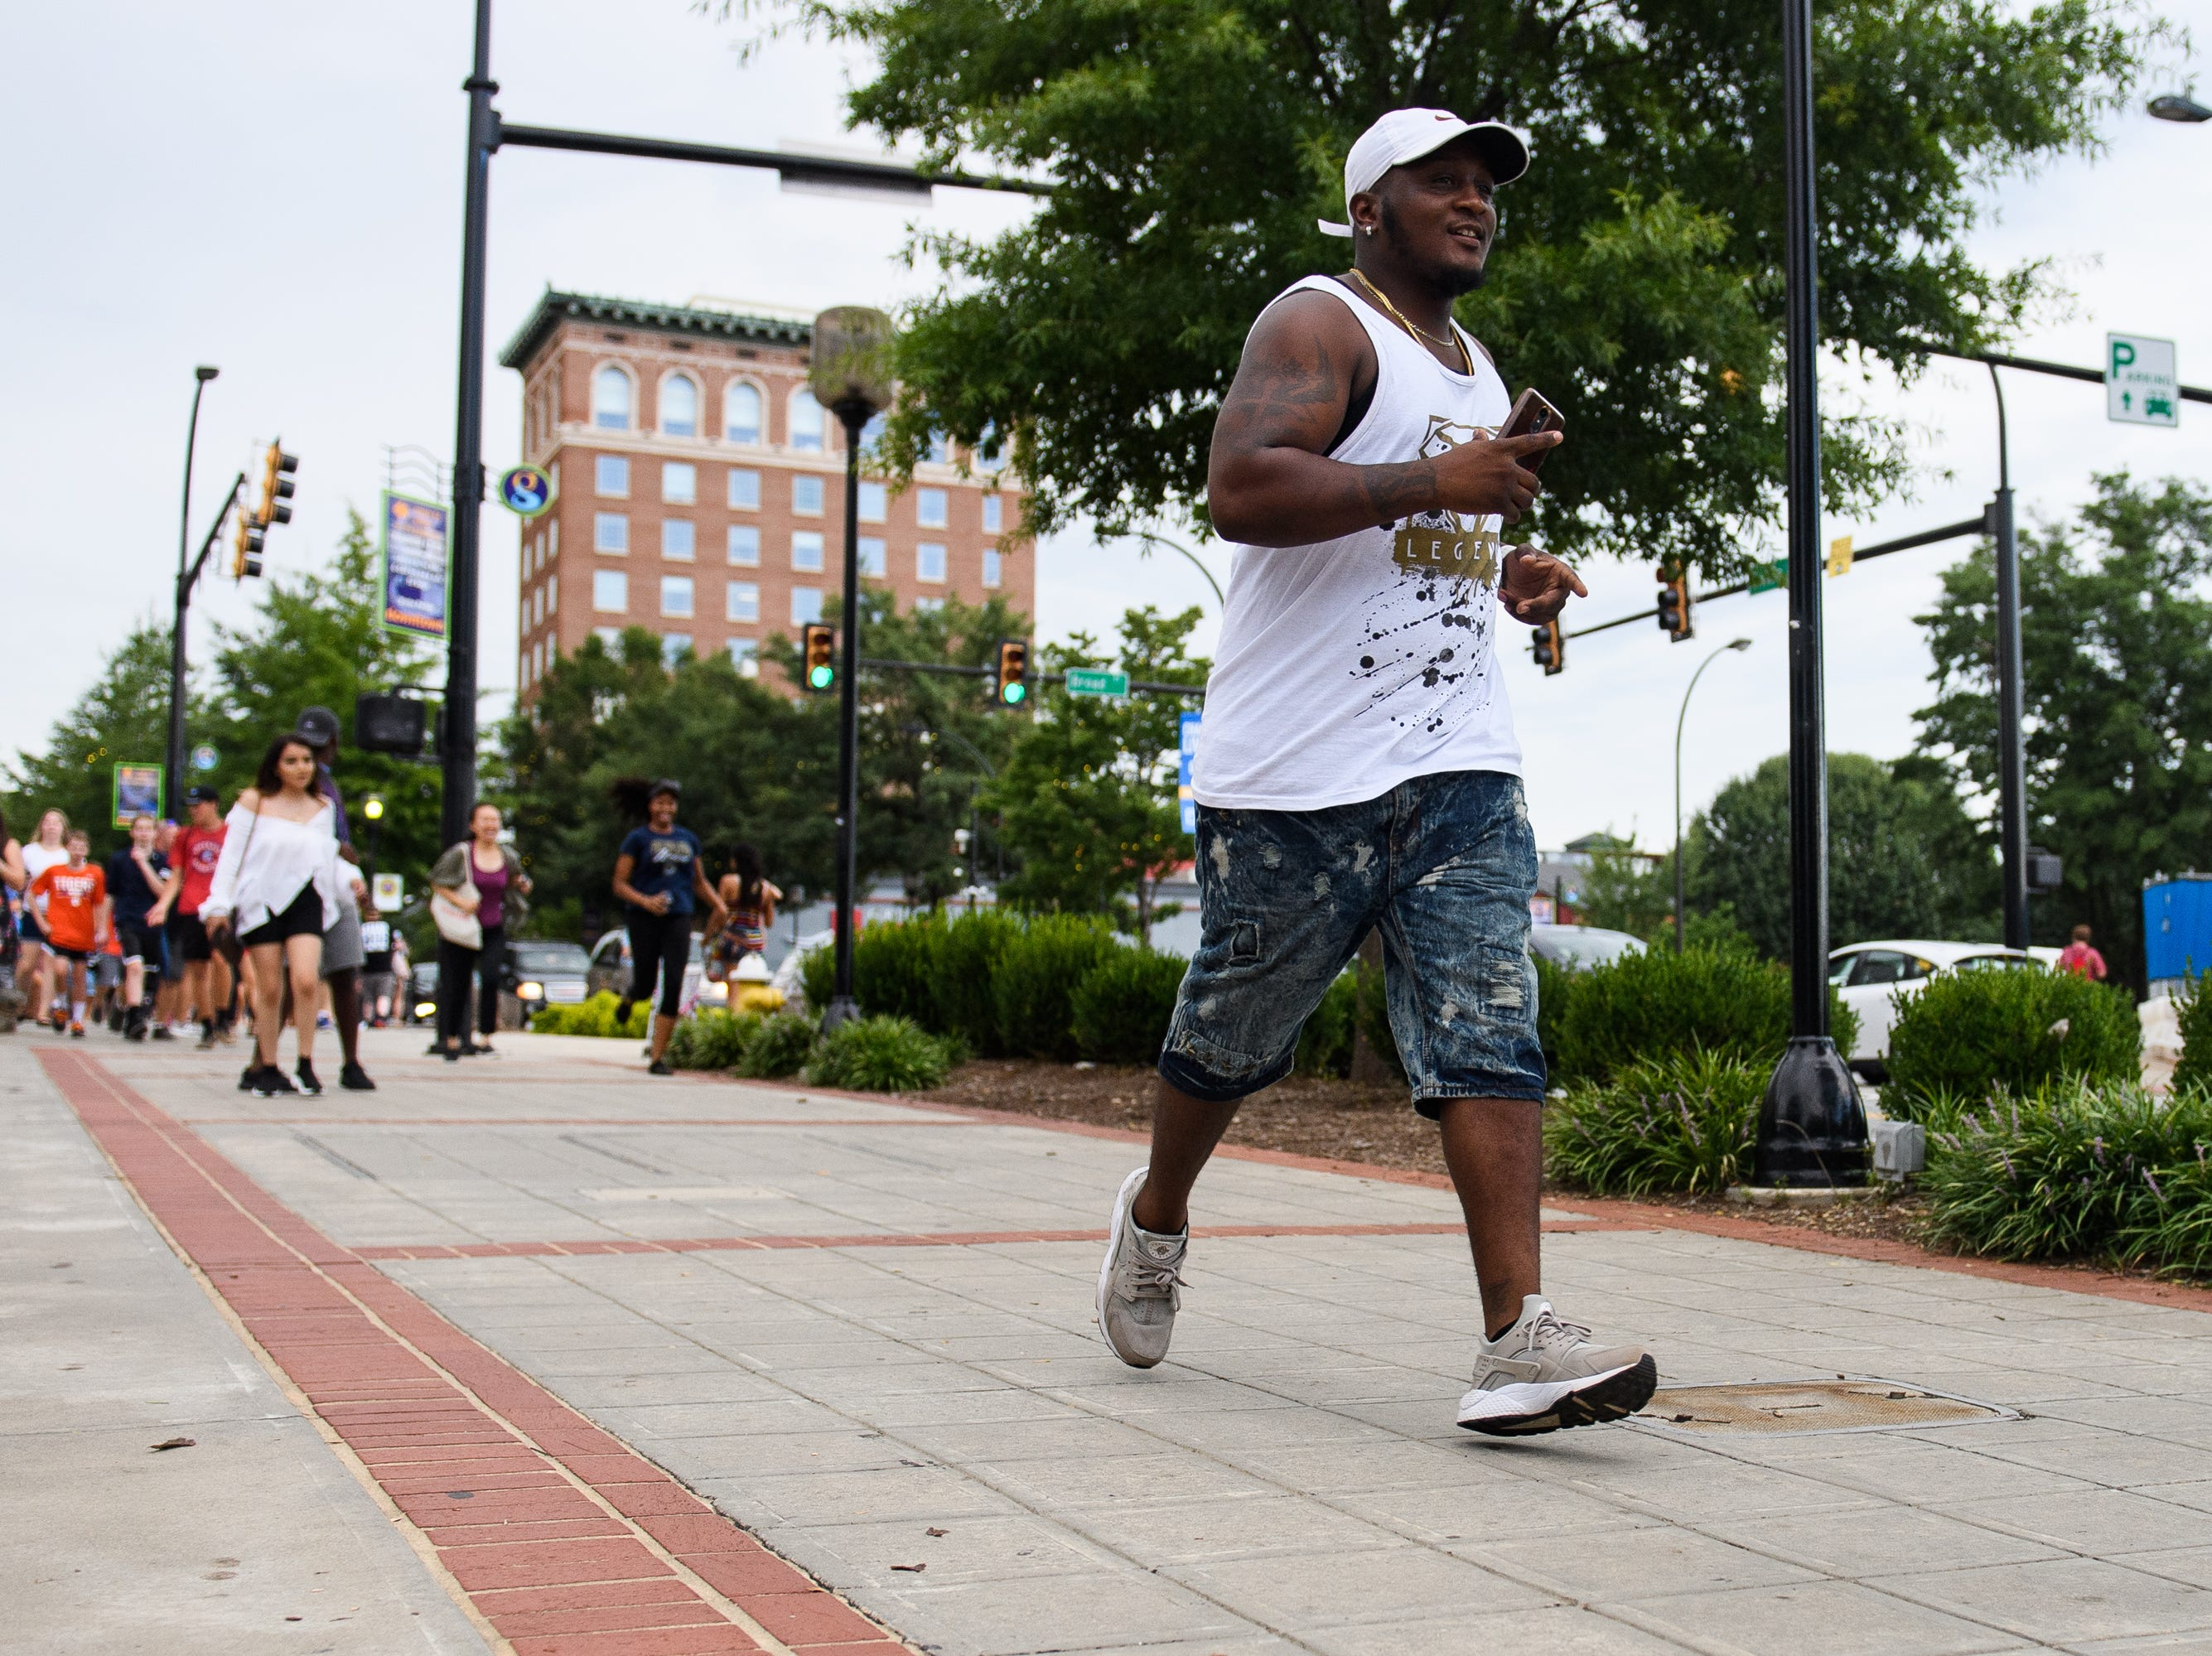 A man runs to try to find a cash prize during the Breakout Greenville Treasure Hunt in downtown Greenville on Tuesday, Aug. 7, 2018.